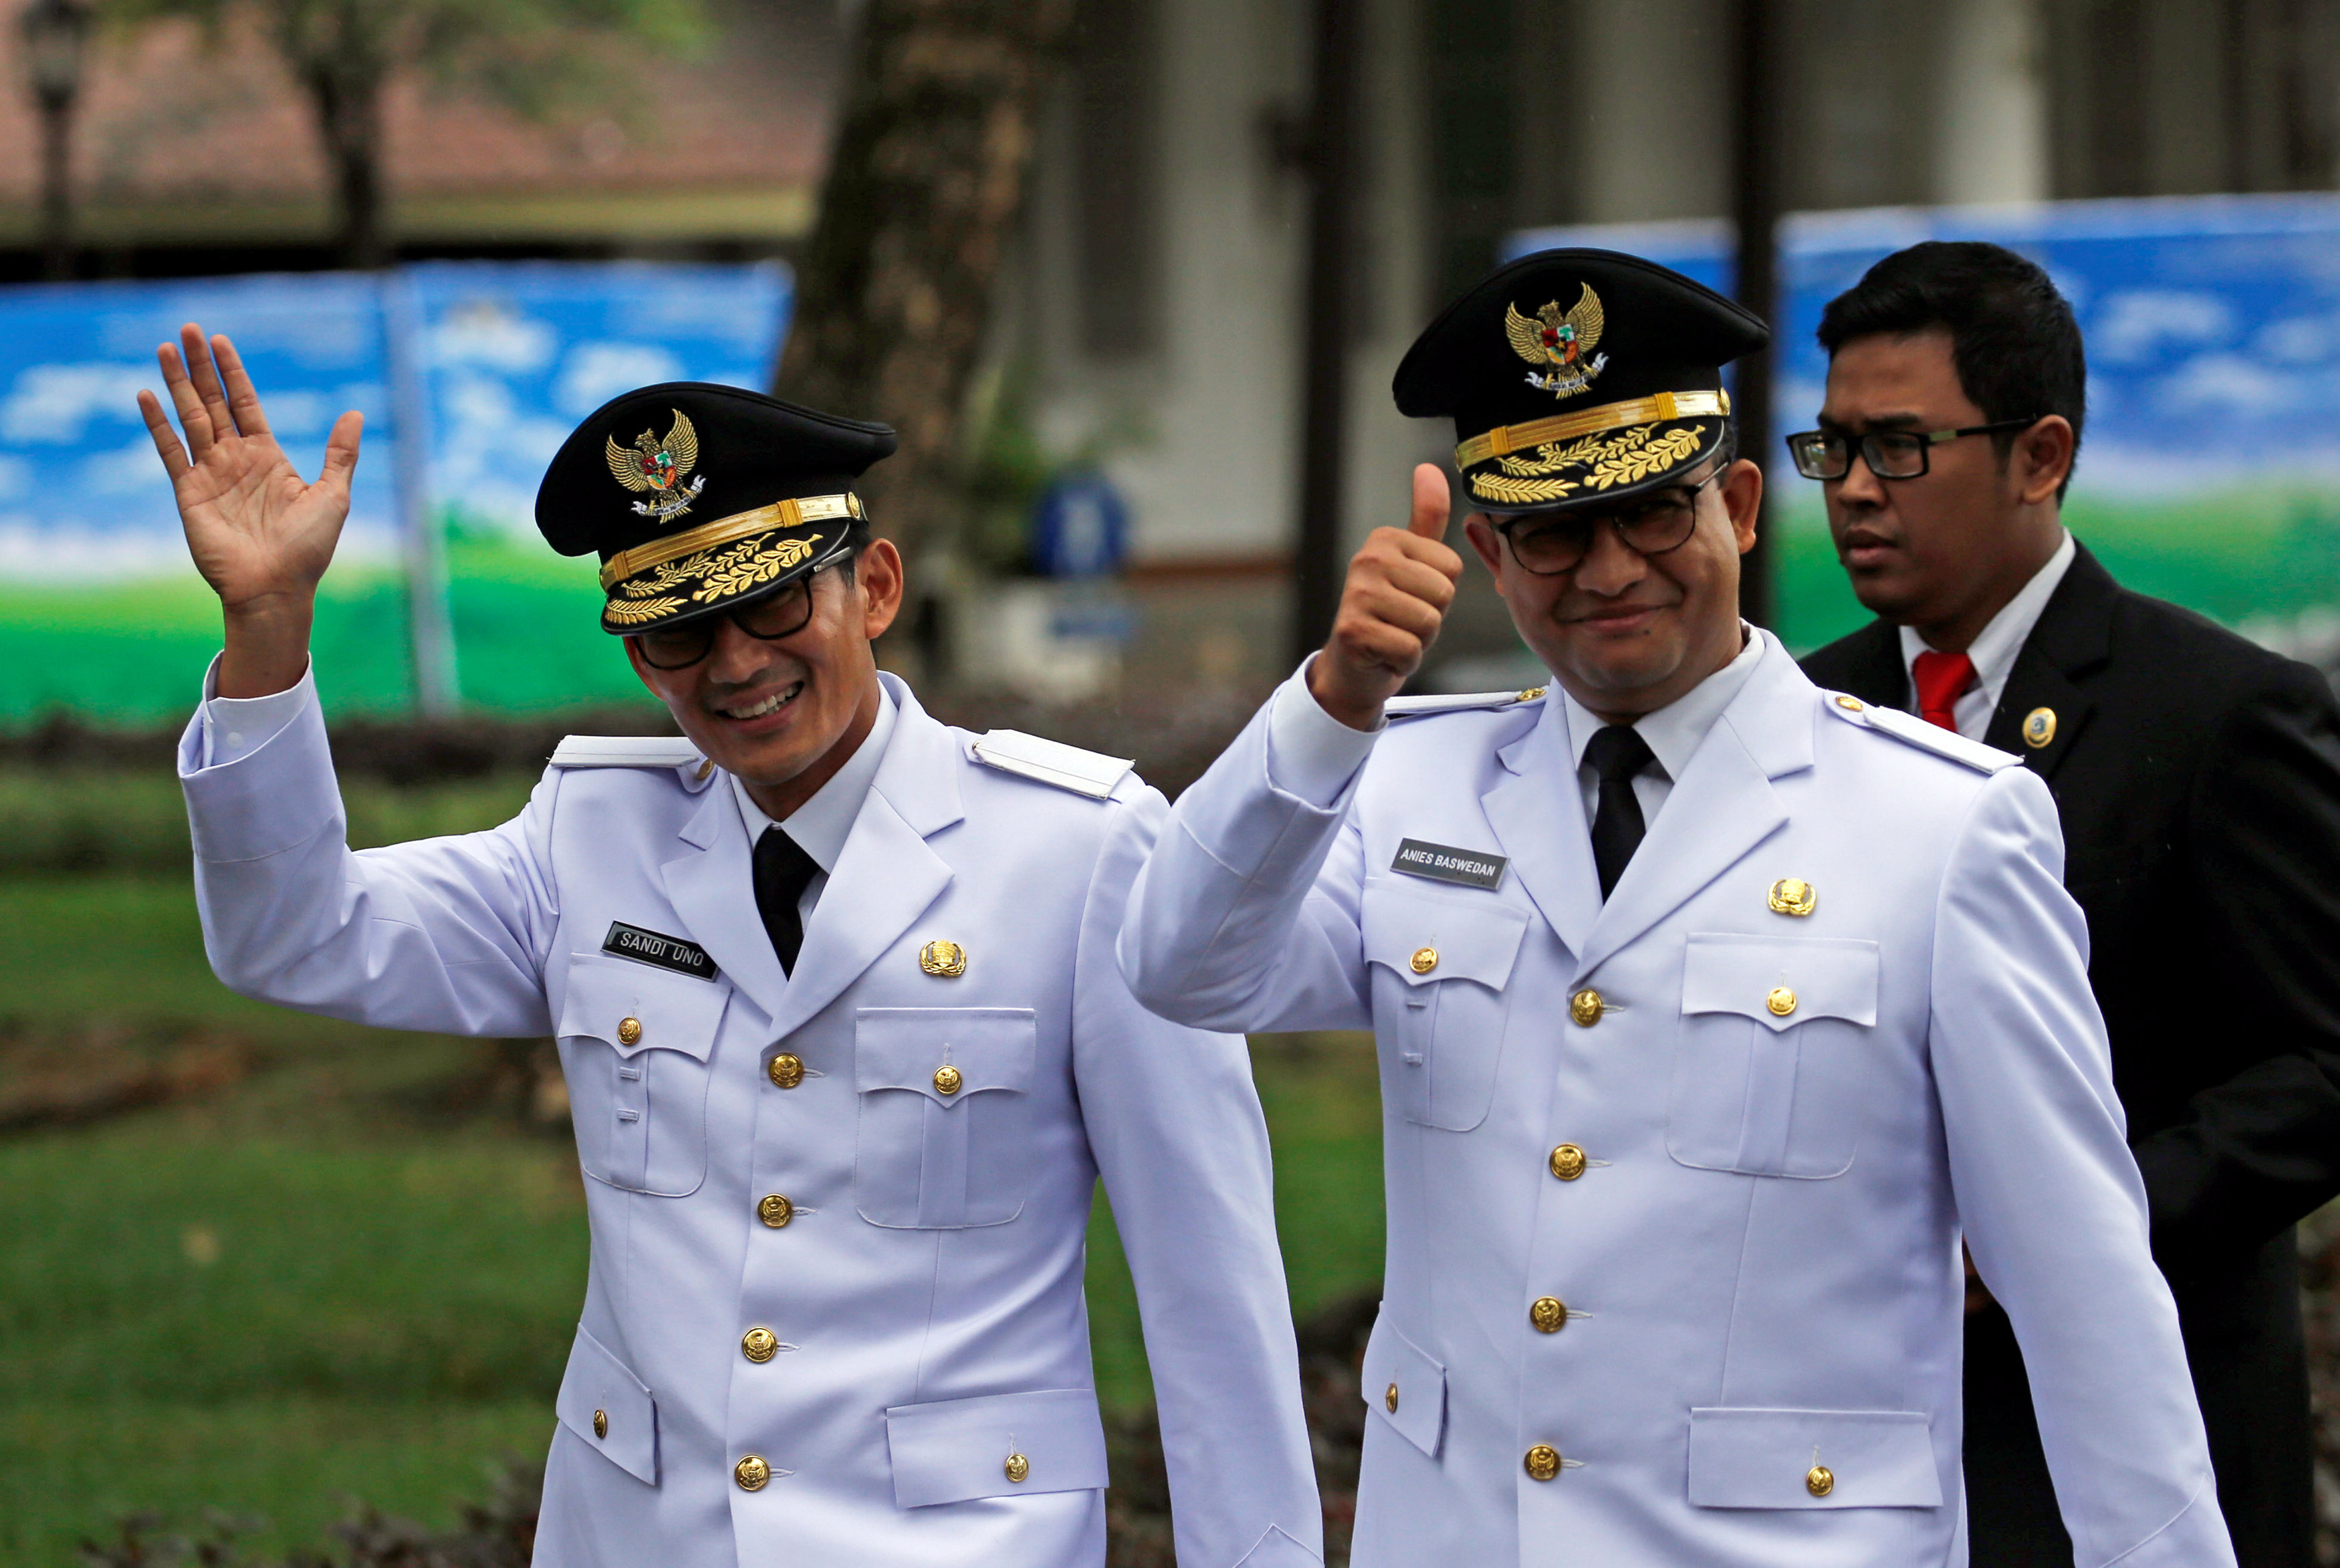 New Jakarta governor under fire for racially tinged speech